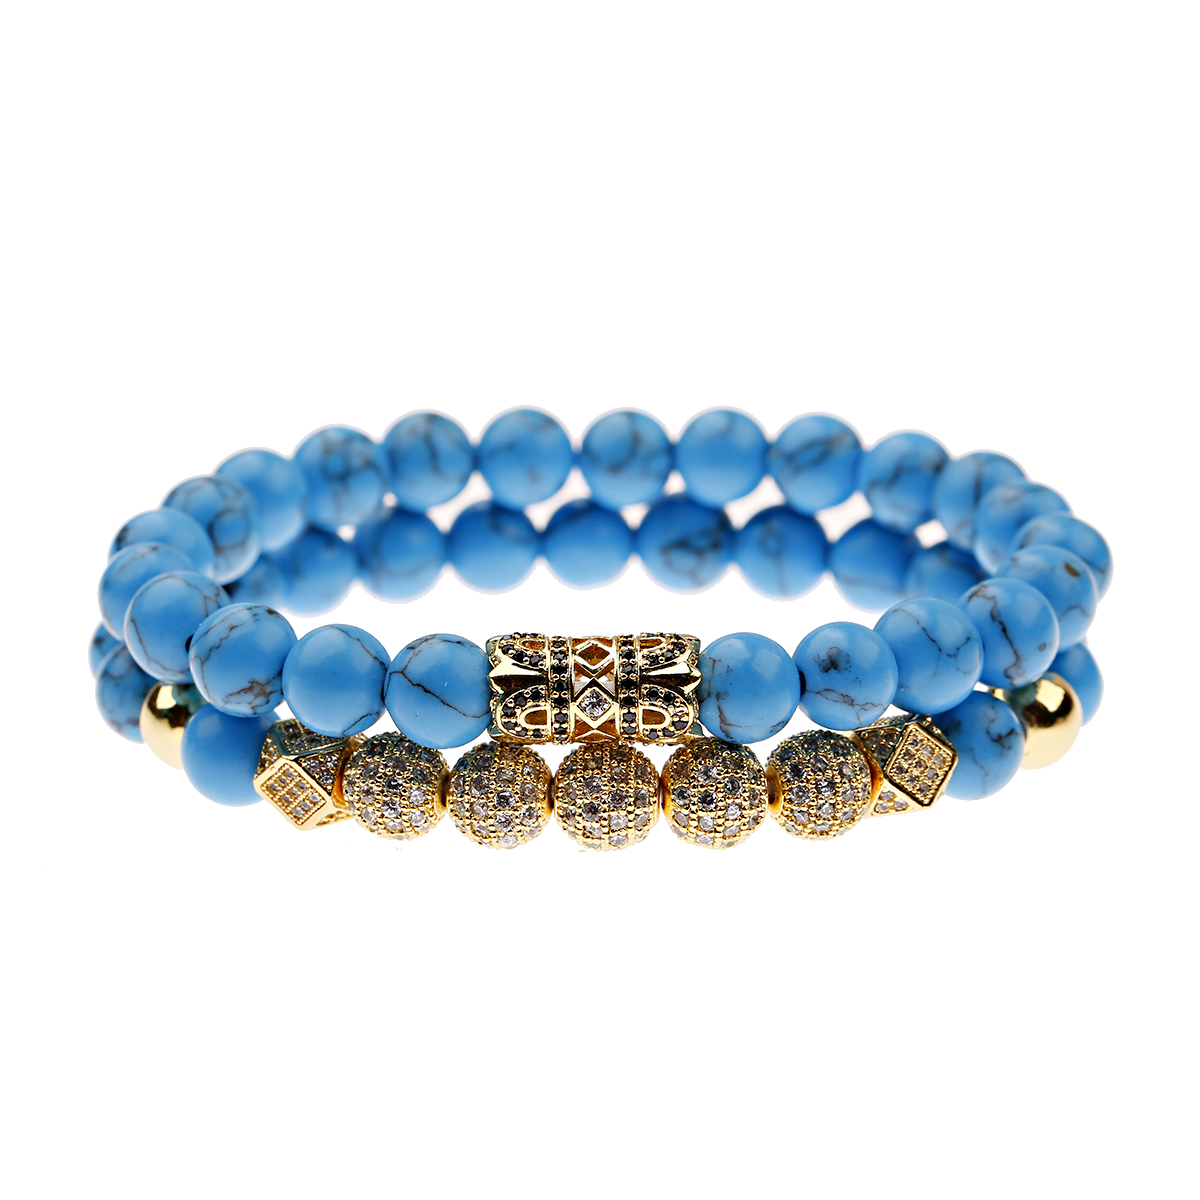 Couples Unisex Beaded Bracelet Rose Gold and Natural Turquoise